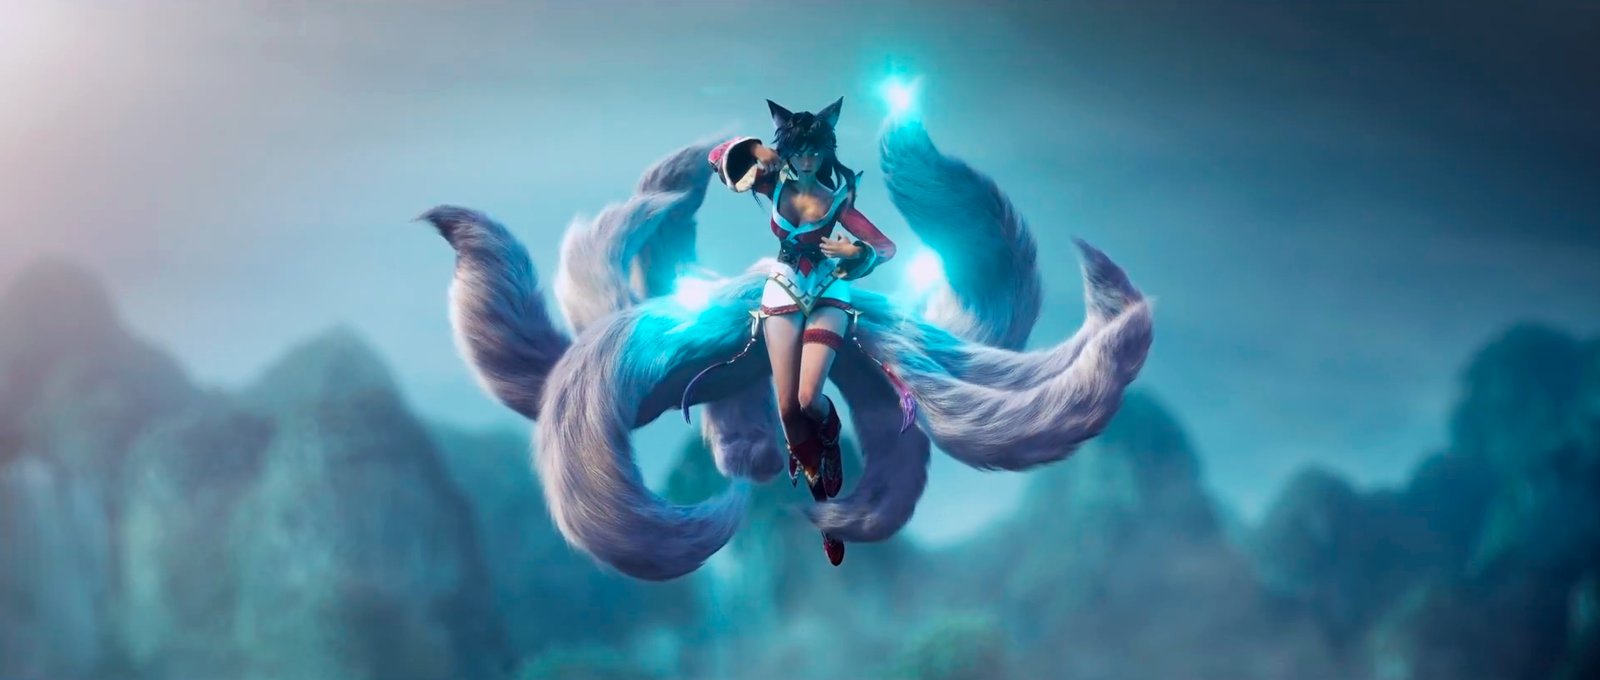 Ahri Fox Fire Lol Wallpaper By 77silentcrow Deviantart Com On